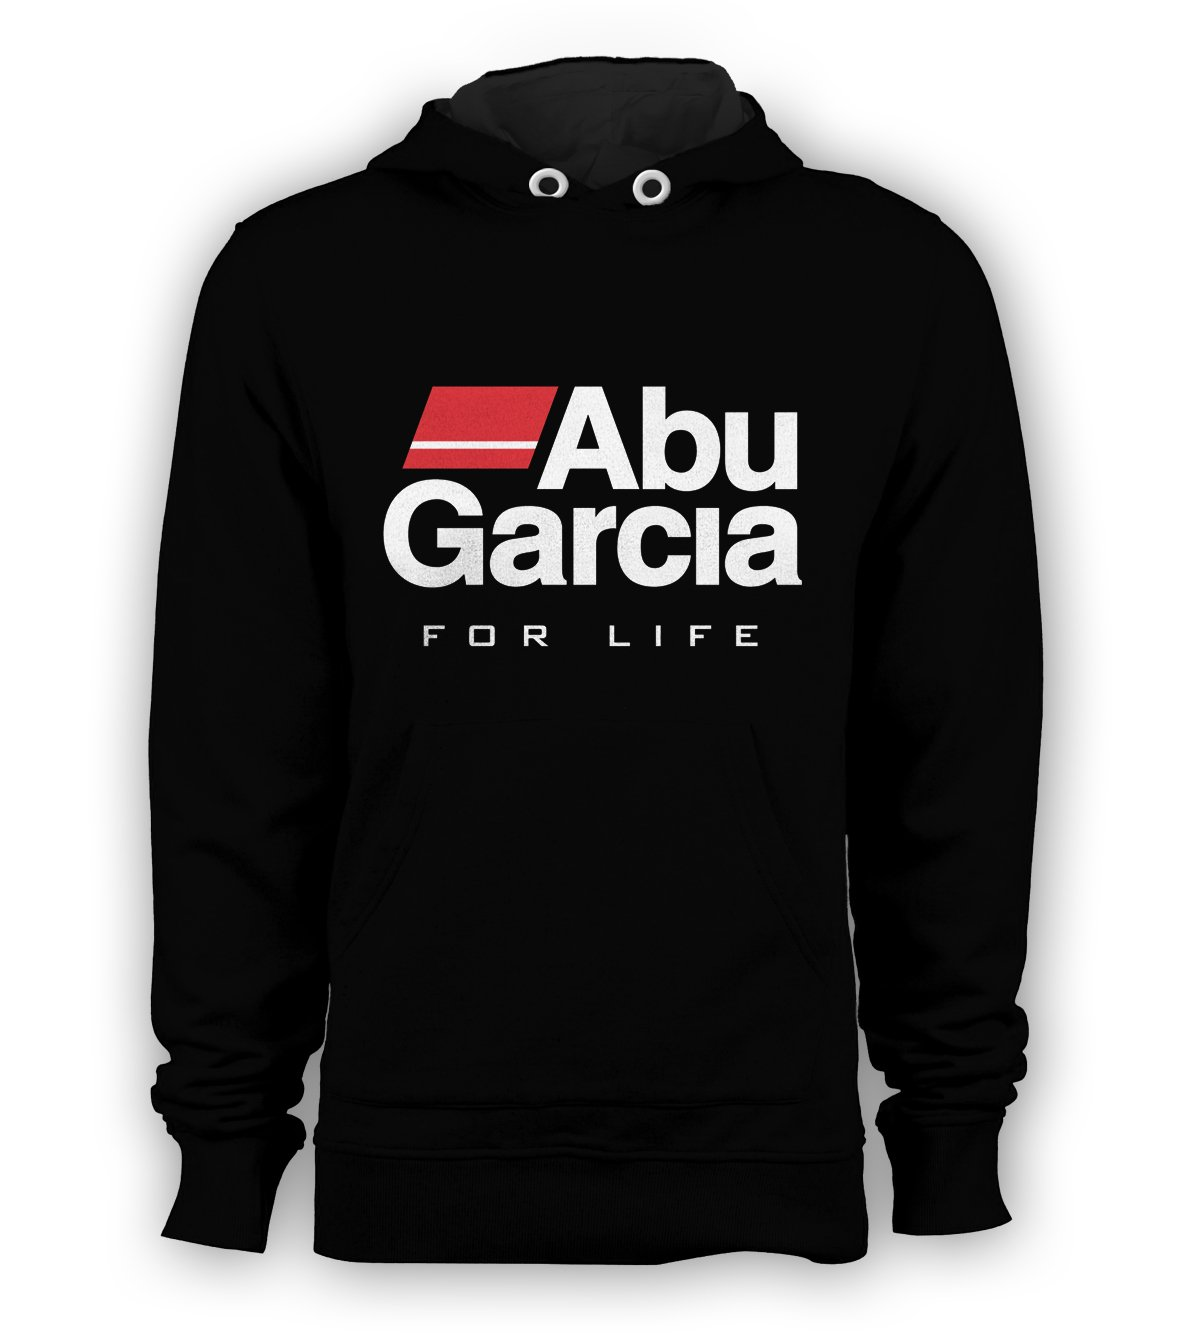 Abu Garcia Fishing Reel Tackle Pullover Hoodie Men Sweatshirts Size S to 3XL New Black